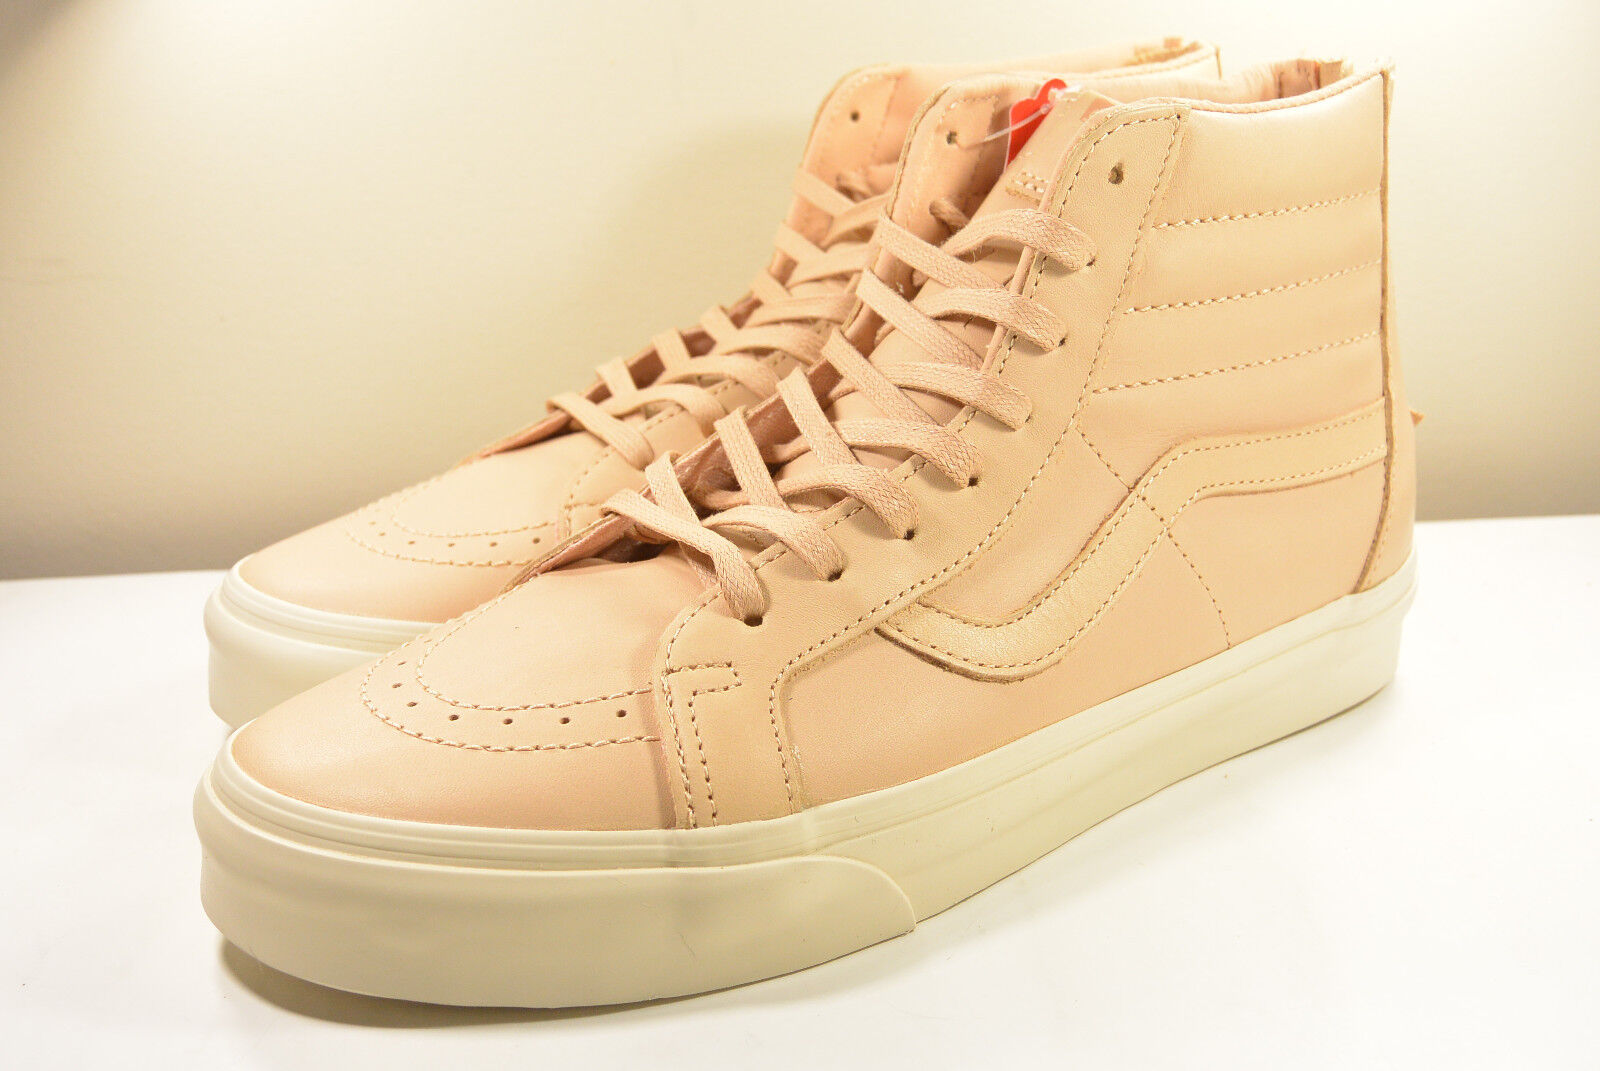 DS 2017 VANS SK8- HI REISSUE VEGGIE TAN VECHETTA LEATHER 10, 12, 13